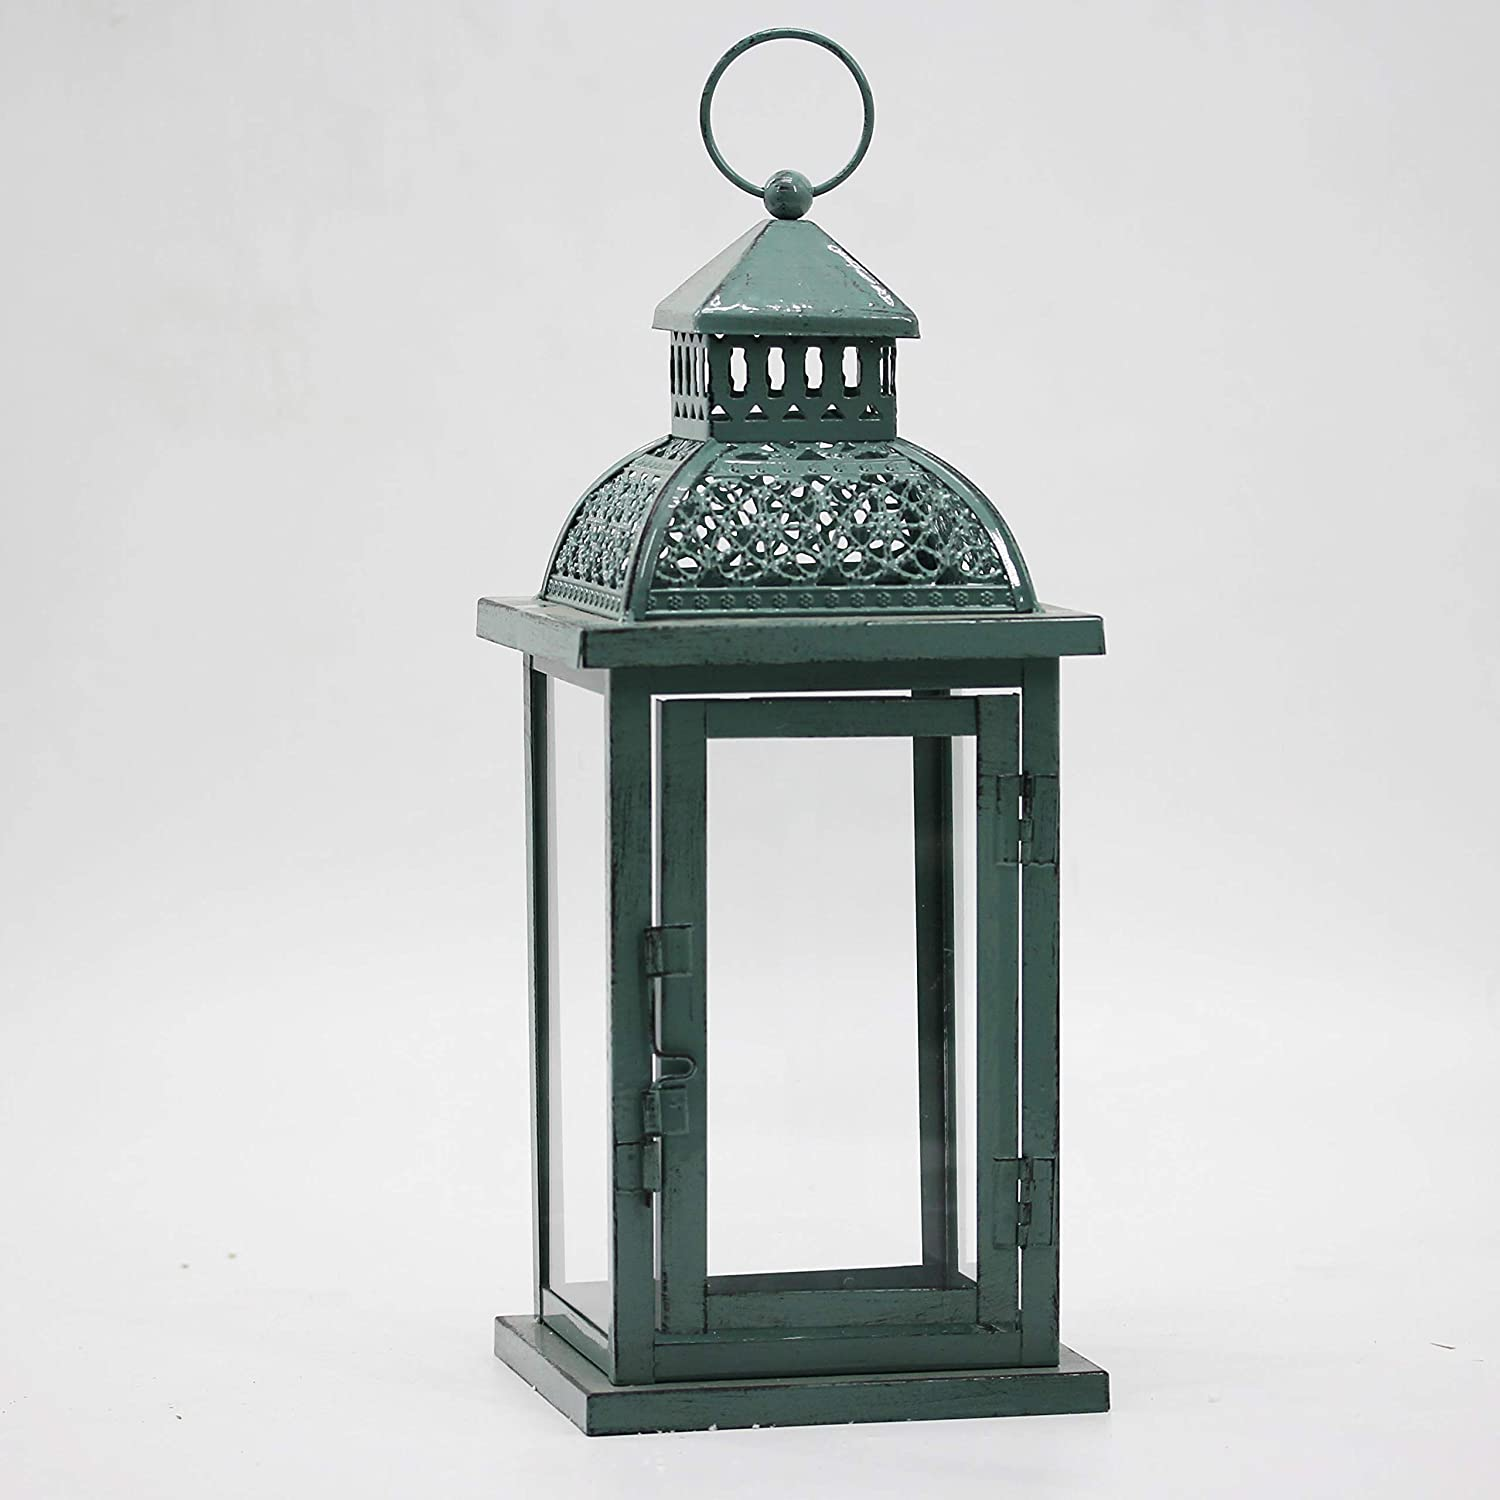 Decorative Candle Lantern, 13.3-inch Antique Green Home Decoration Metal Lantern for Wedding Patio, Party,Outdoor Decorative,Indoor Hanging Candle Holders, Garden Decor Lantern (Vintage Green)